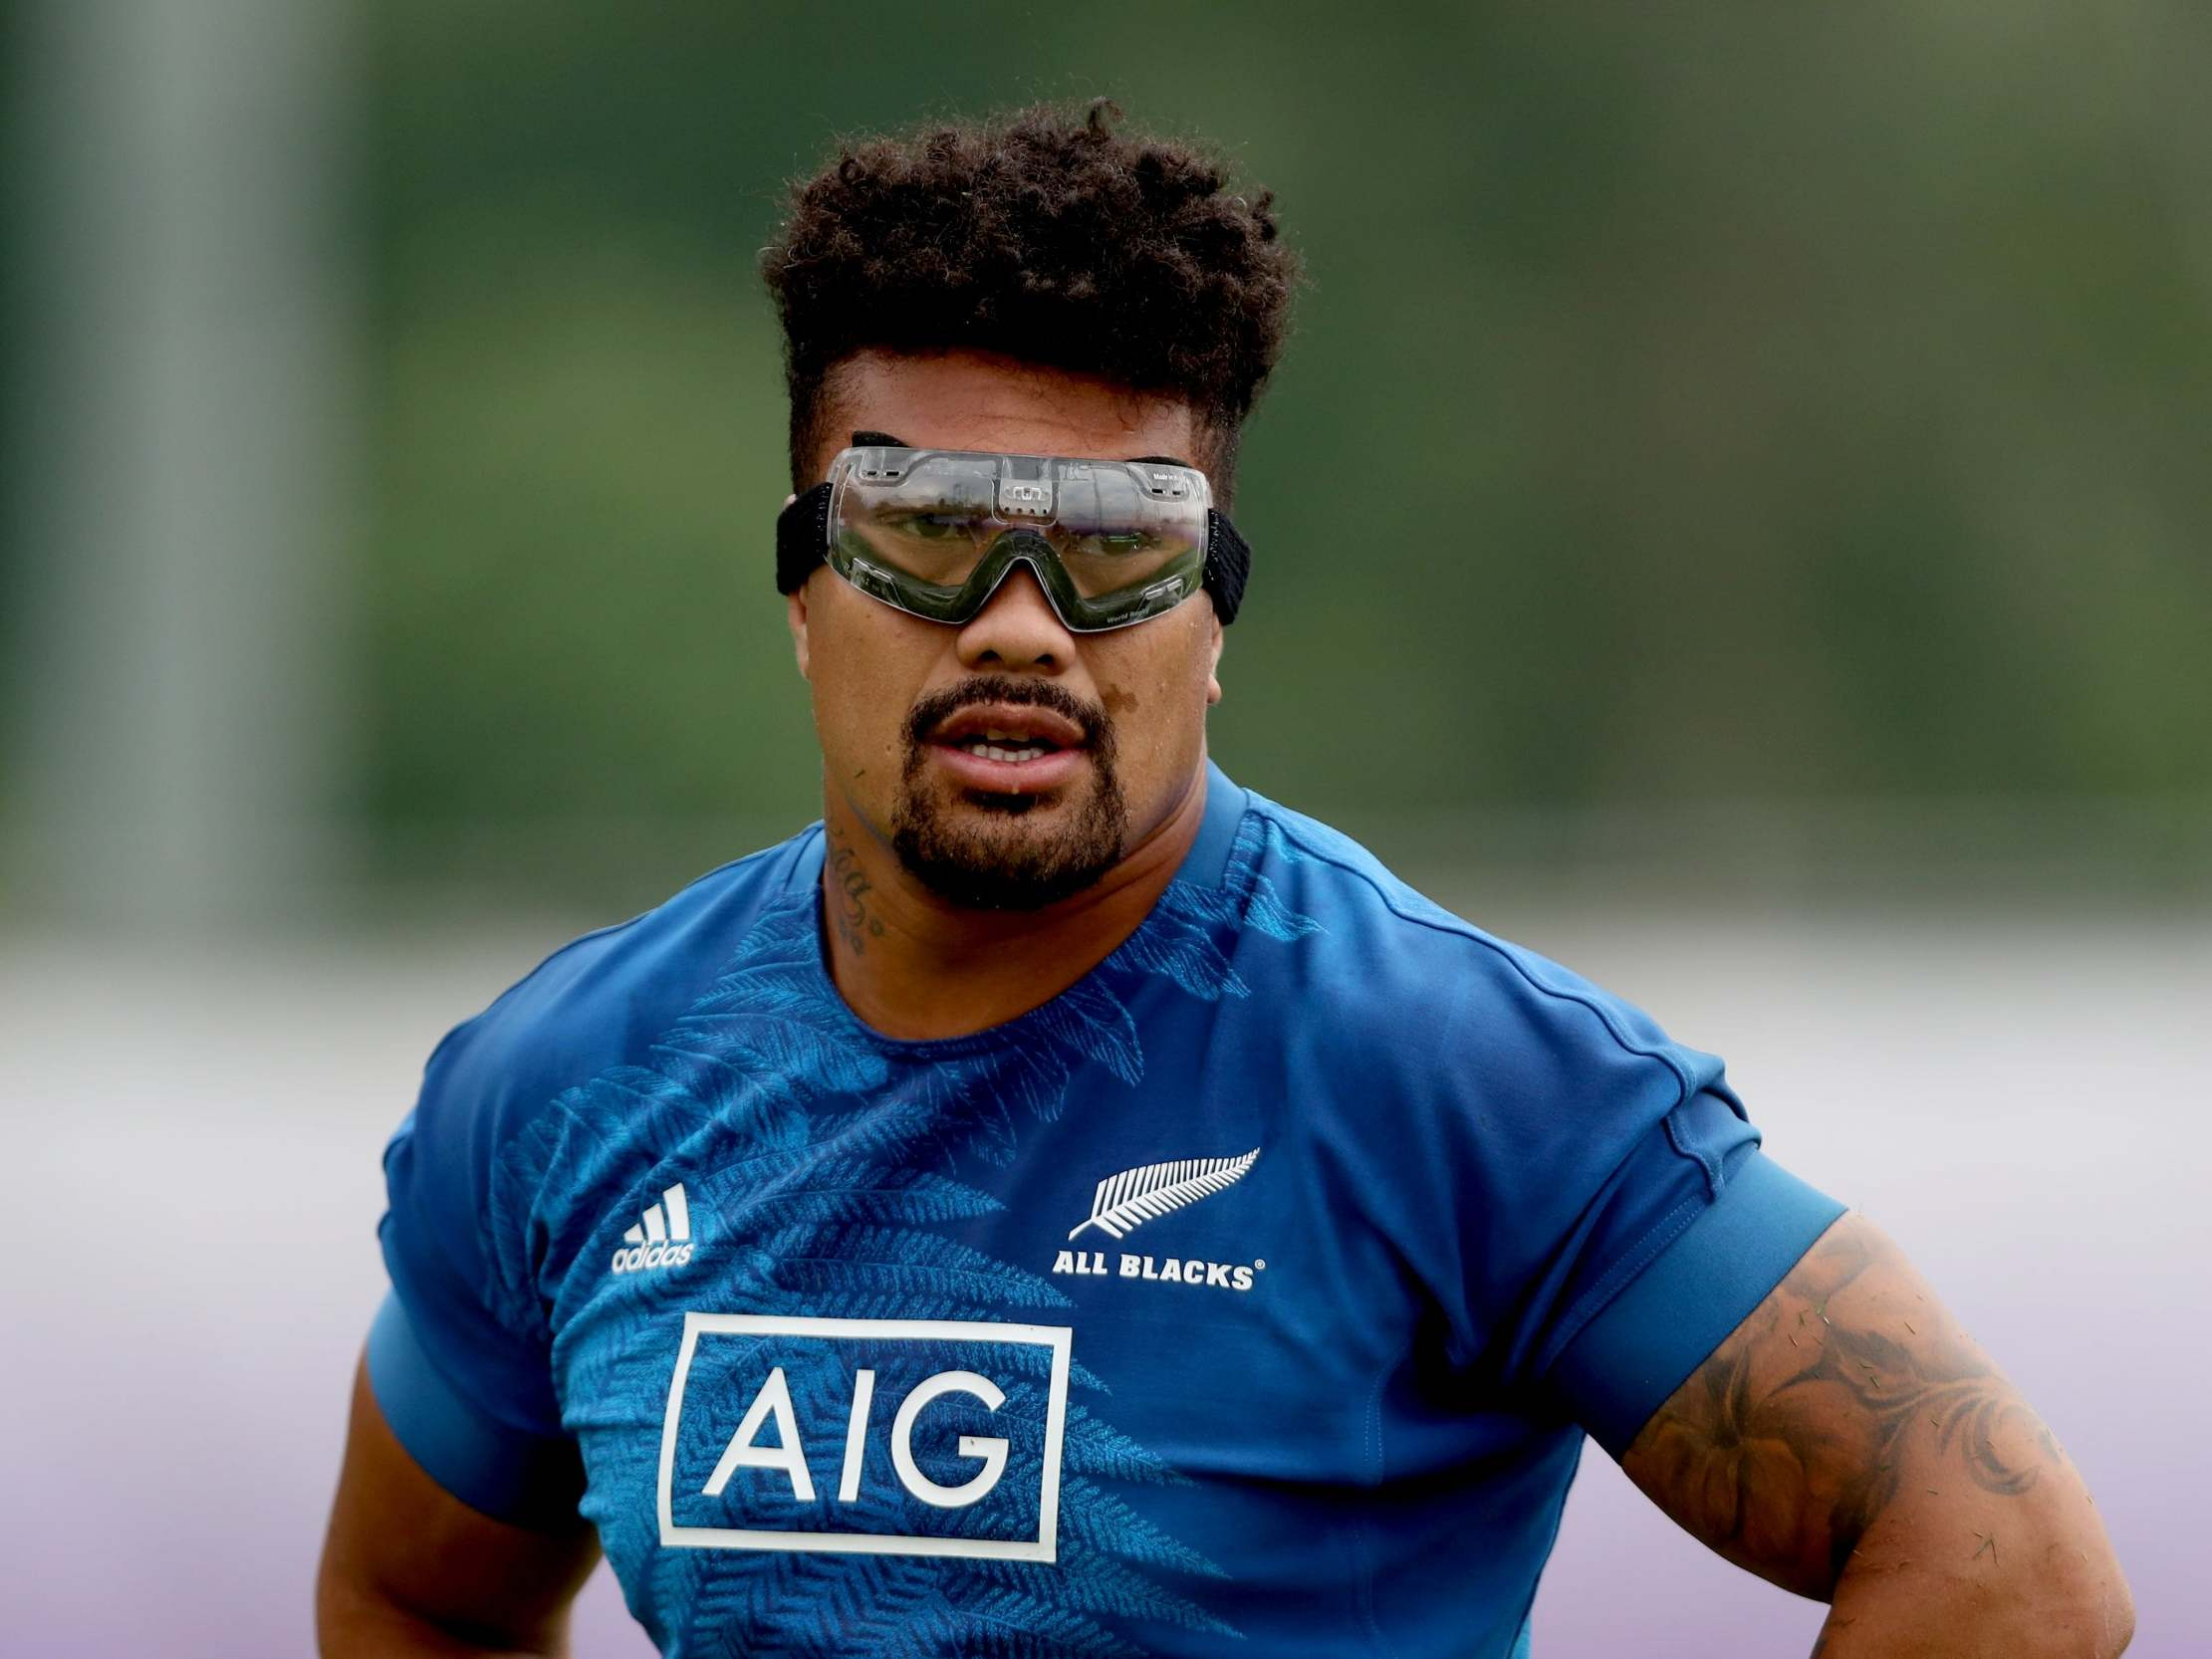 Rugby World Cup 2019: New Zealand's Ardie Savea to make history as first player to wear goggles